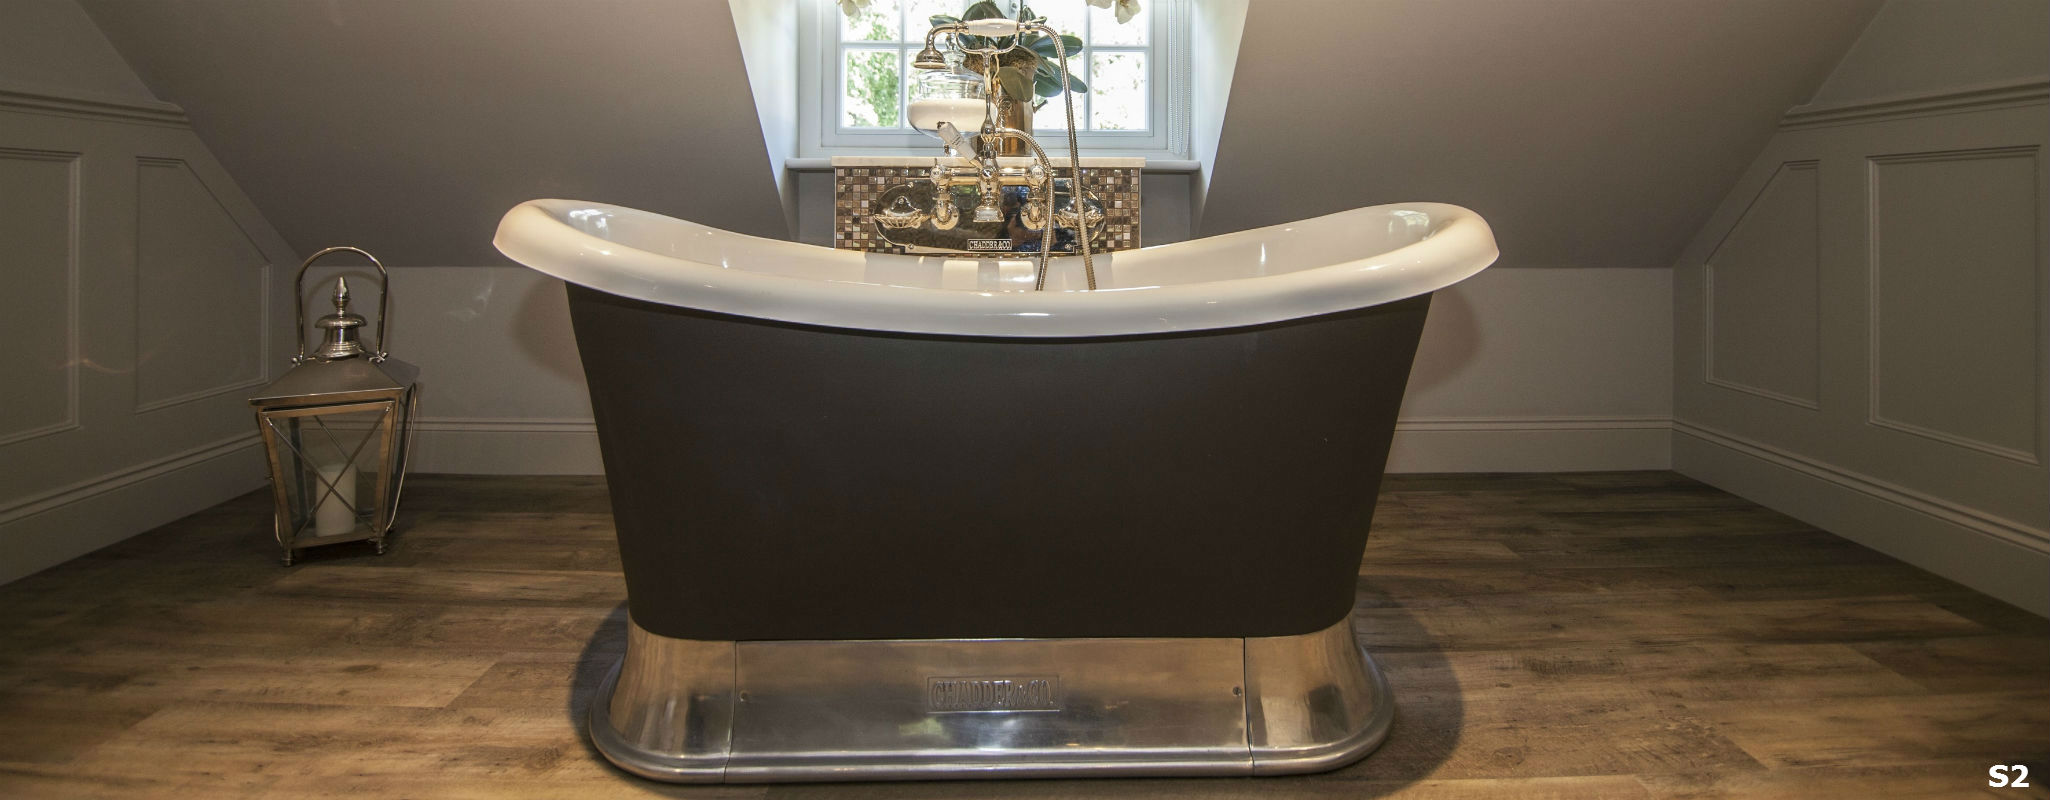 Bespoke Toilet and Bespoke Cisterns, Luxury Bespoke Bathroom